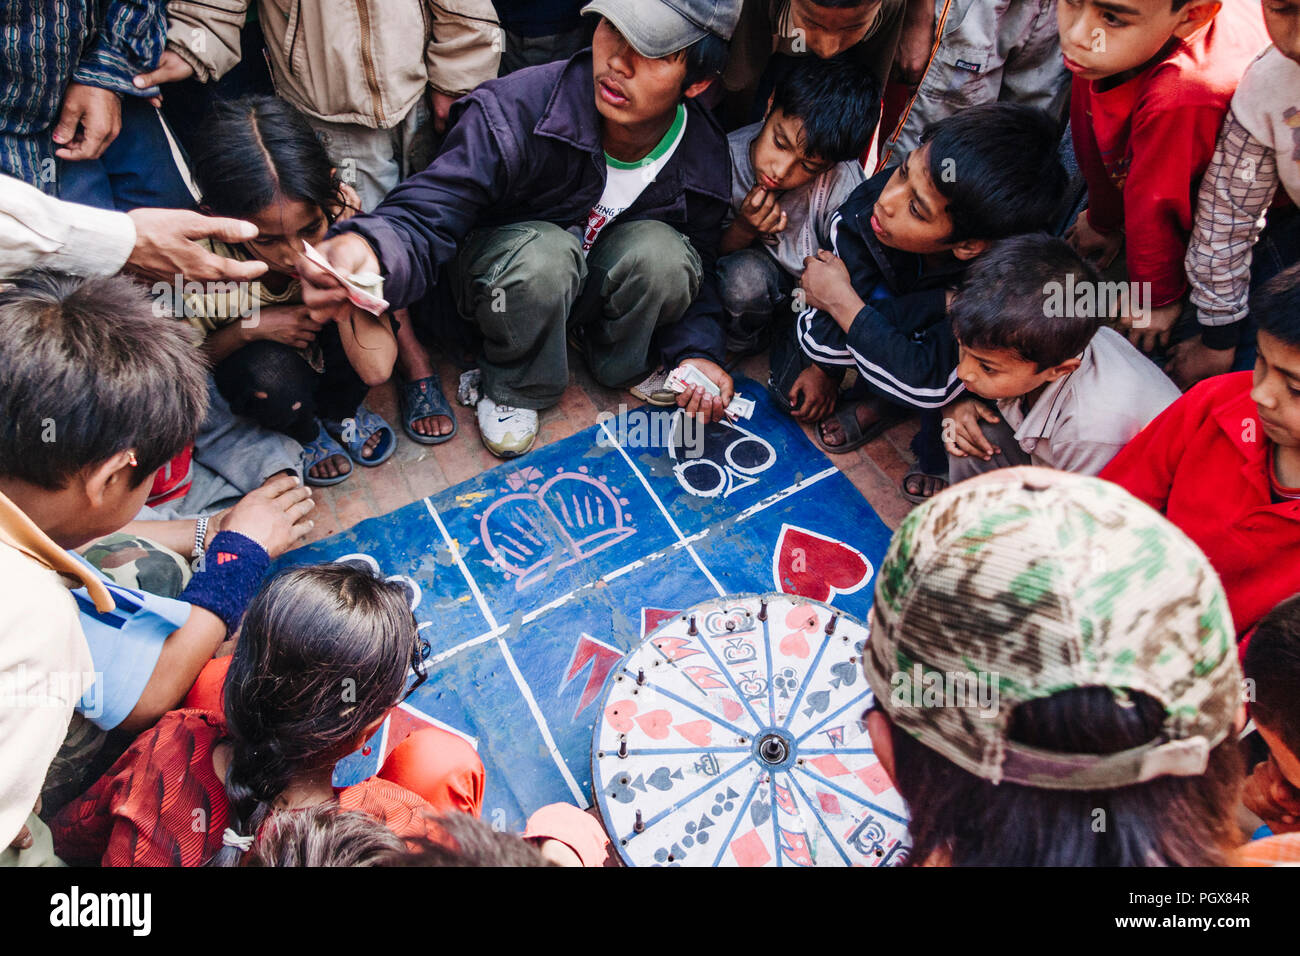 Bhaktapur, Kathmandu Valley, Bagmati, Nepal :  A young men surrounded by children squats by a roulette betting stall at Taumadhi Tole square before th - Stock Image